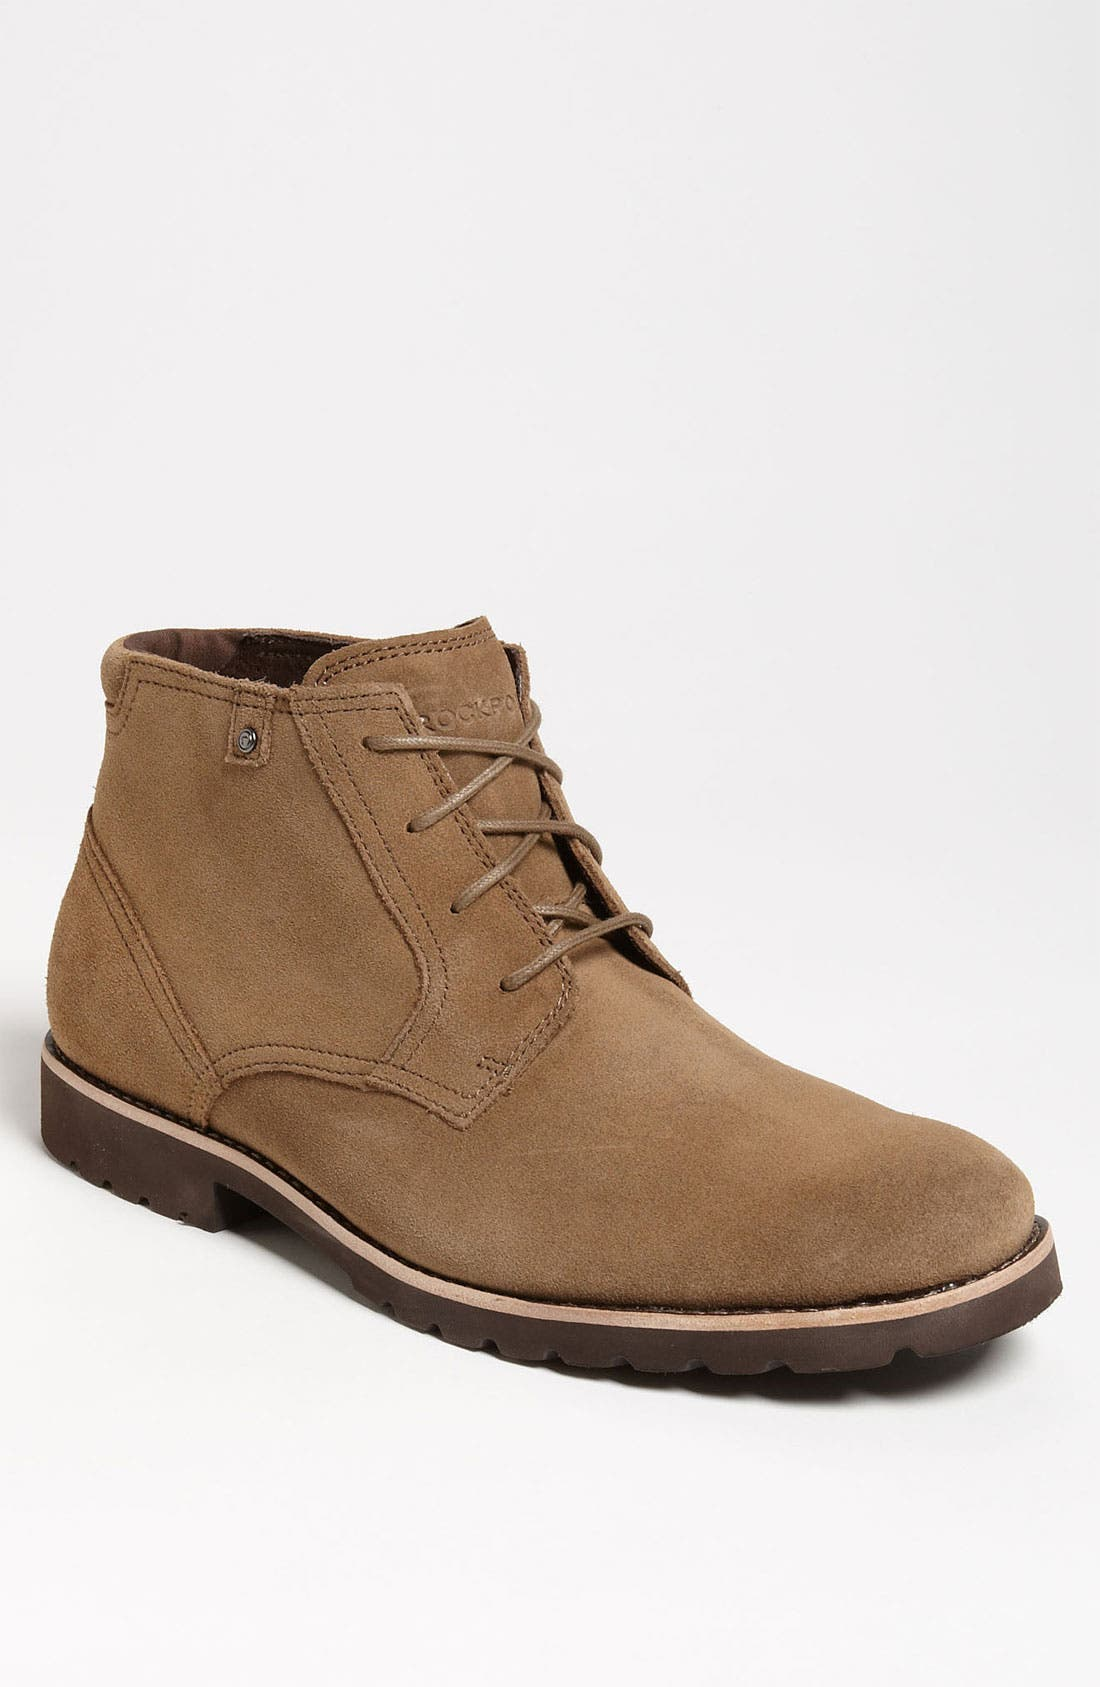 Alternate Image 1 Selected - Rockport® 'Ledge Hill' Chukka Boot